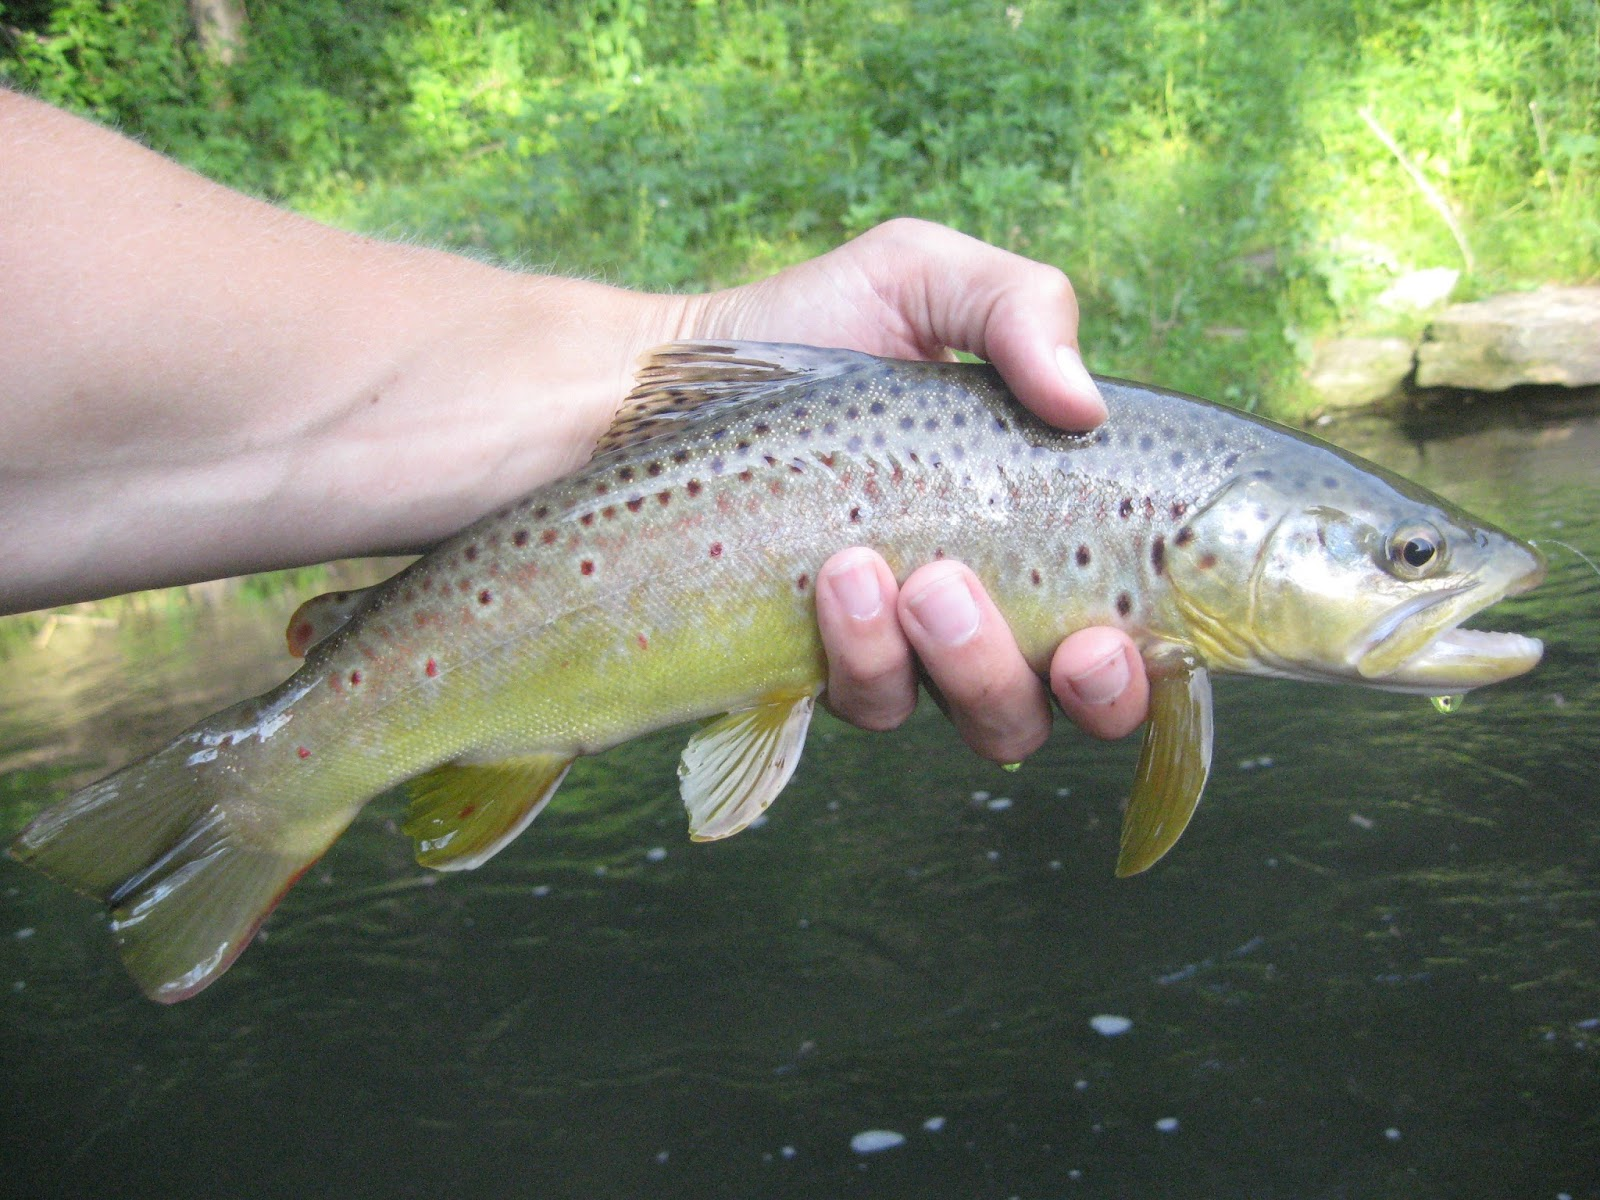 Minnesota driftless fly fishing trip report caddis madness for Driftless fly fishing